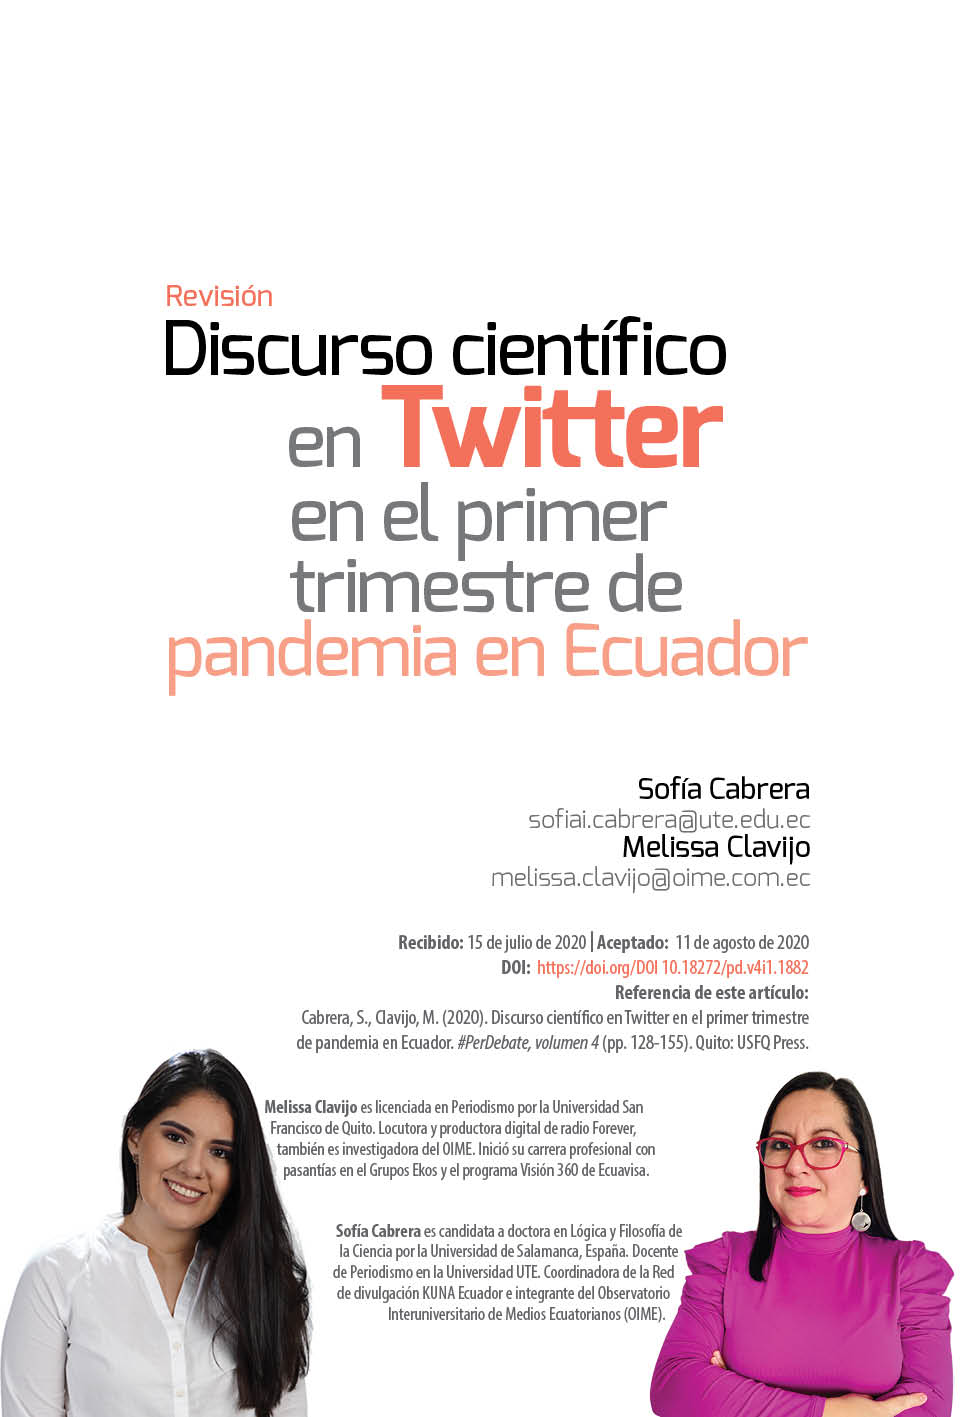 Discurso científico Twitter